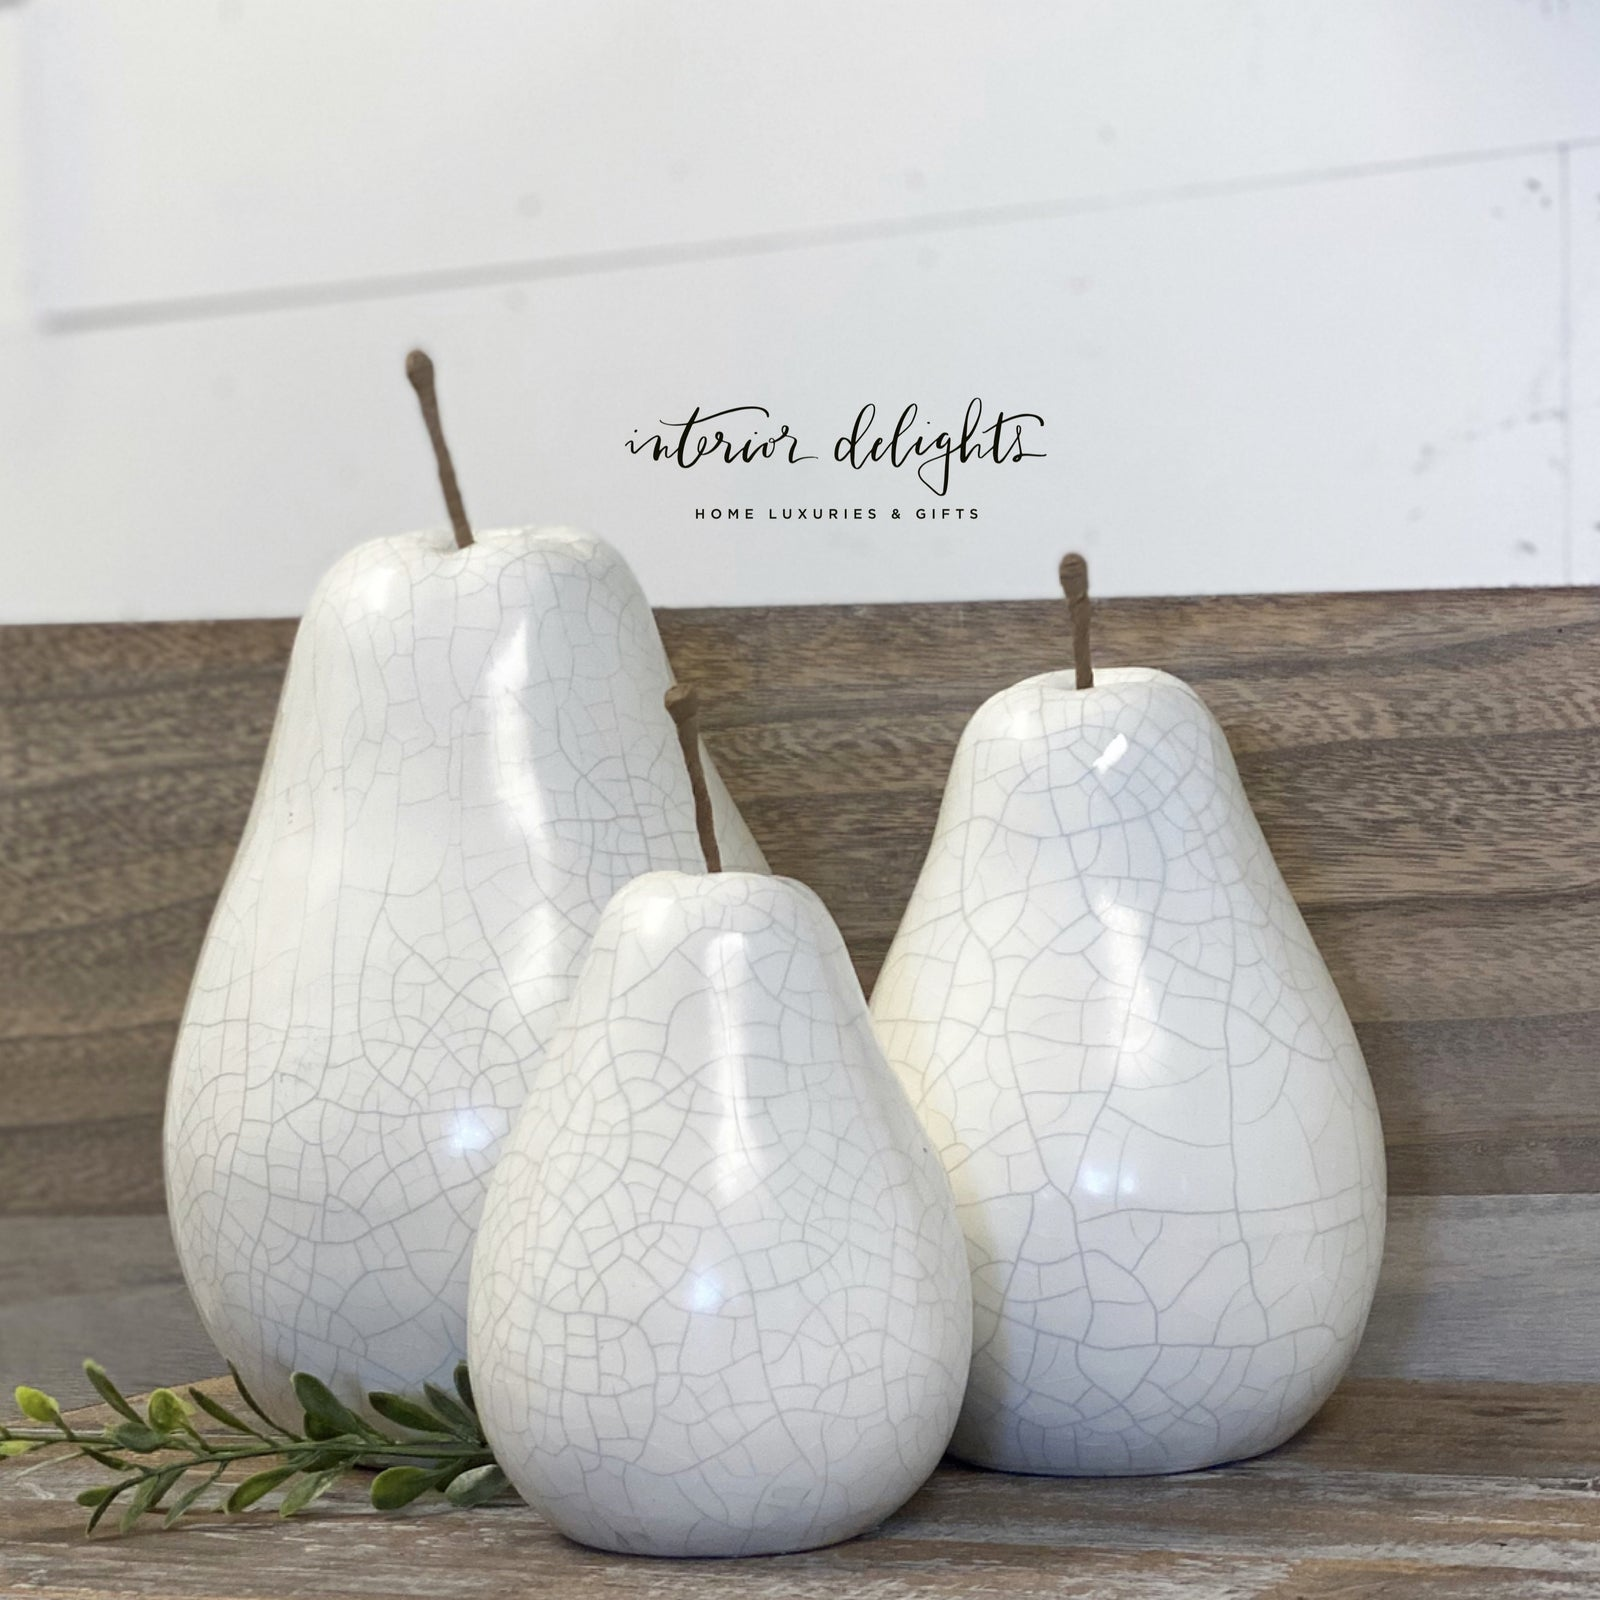 Ceramic Crackled Pears